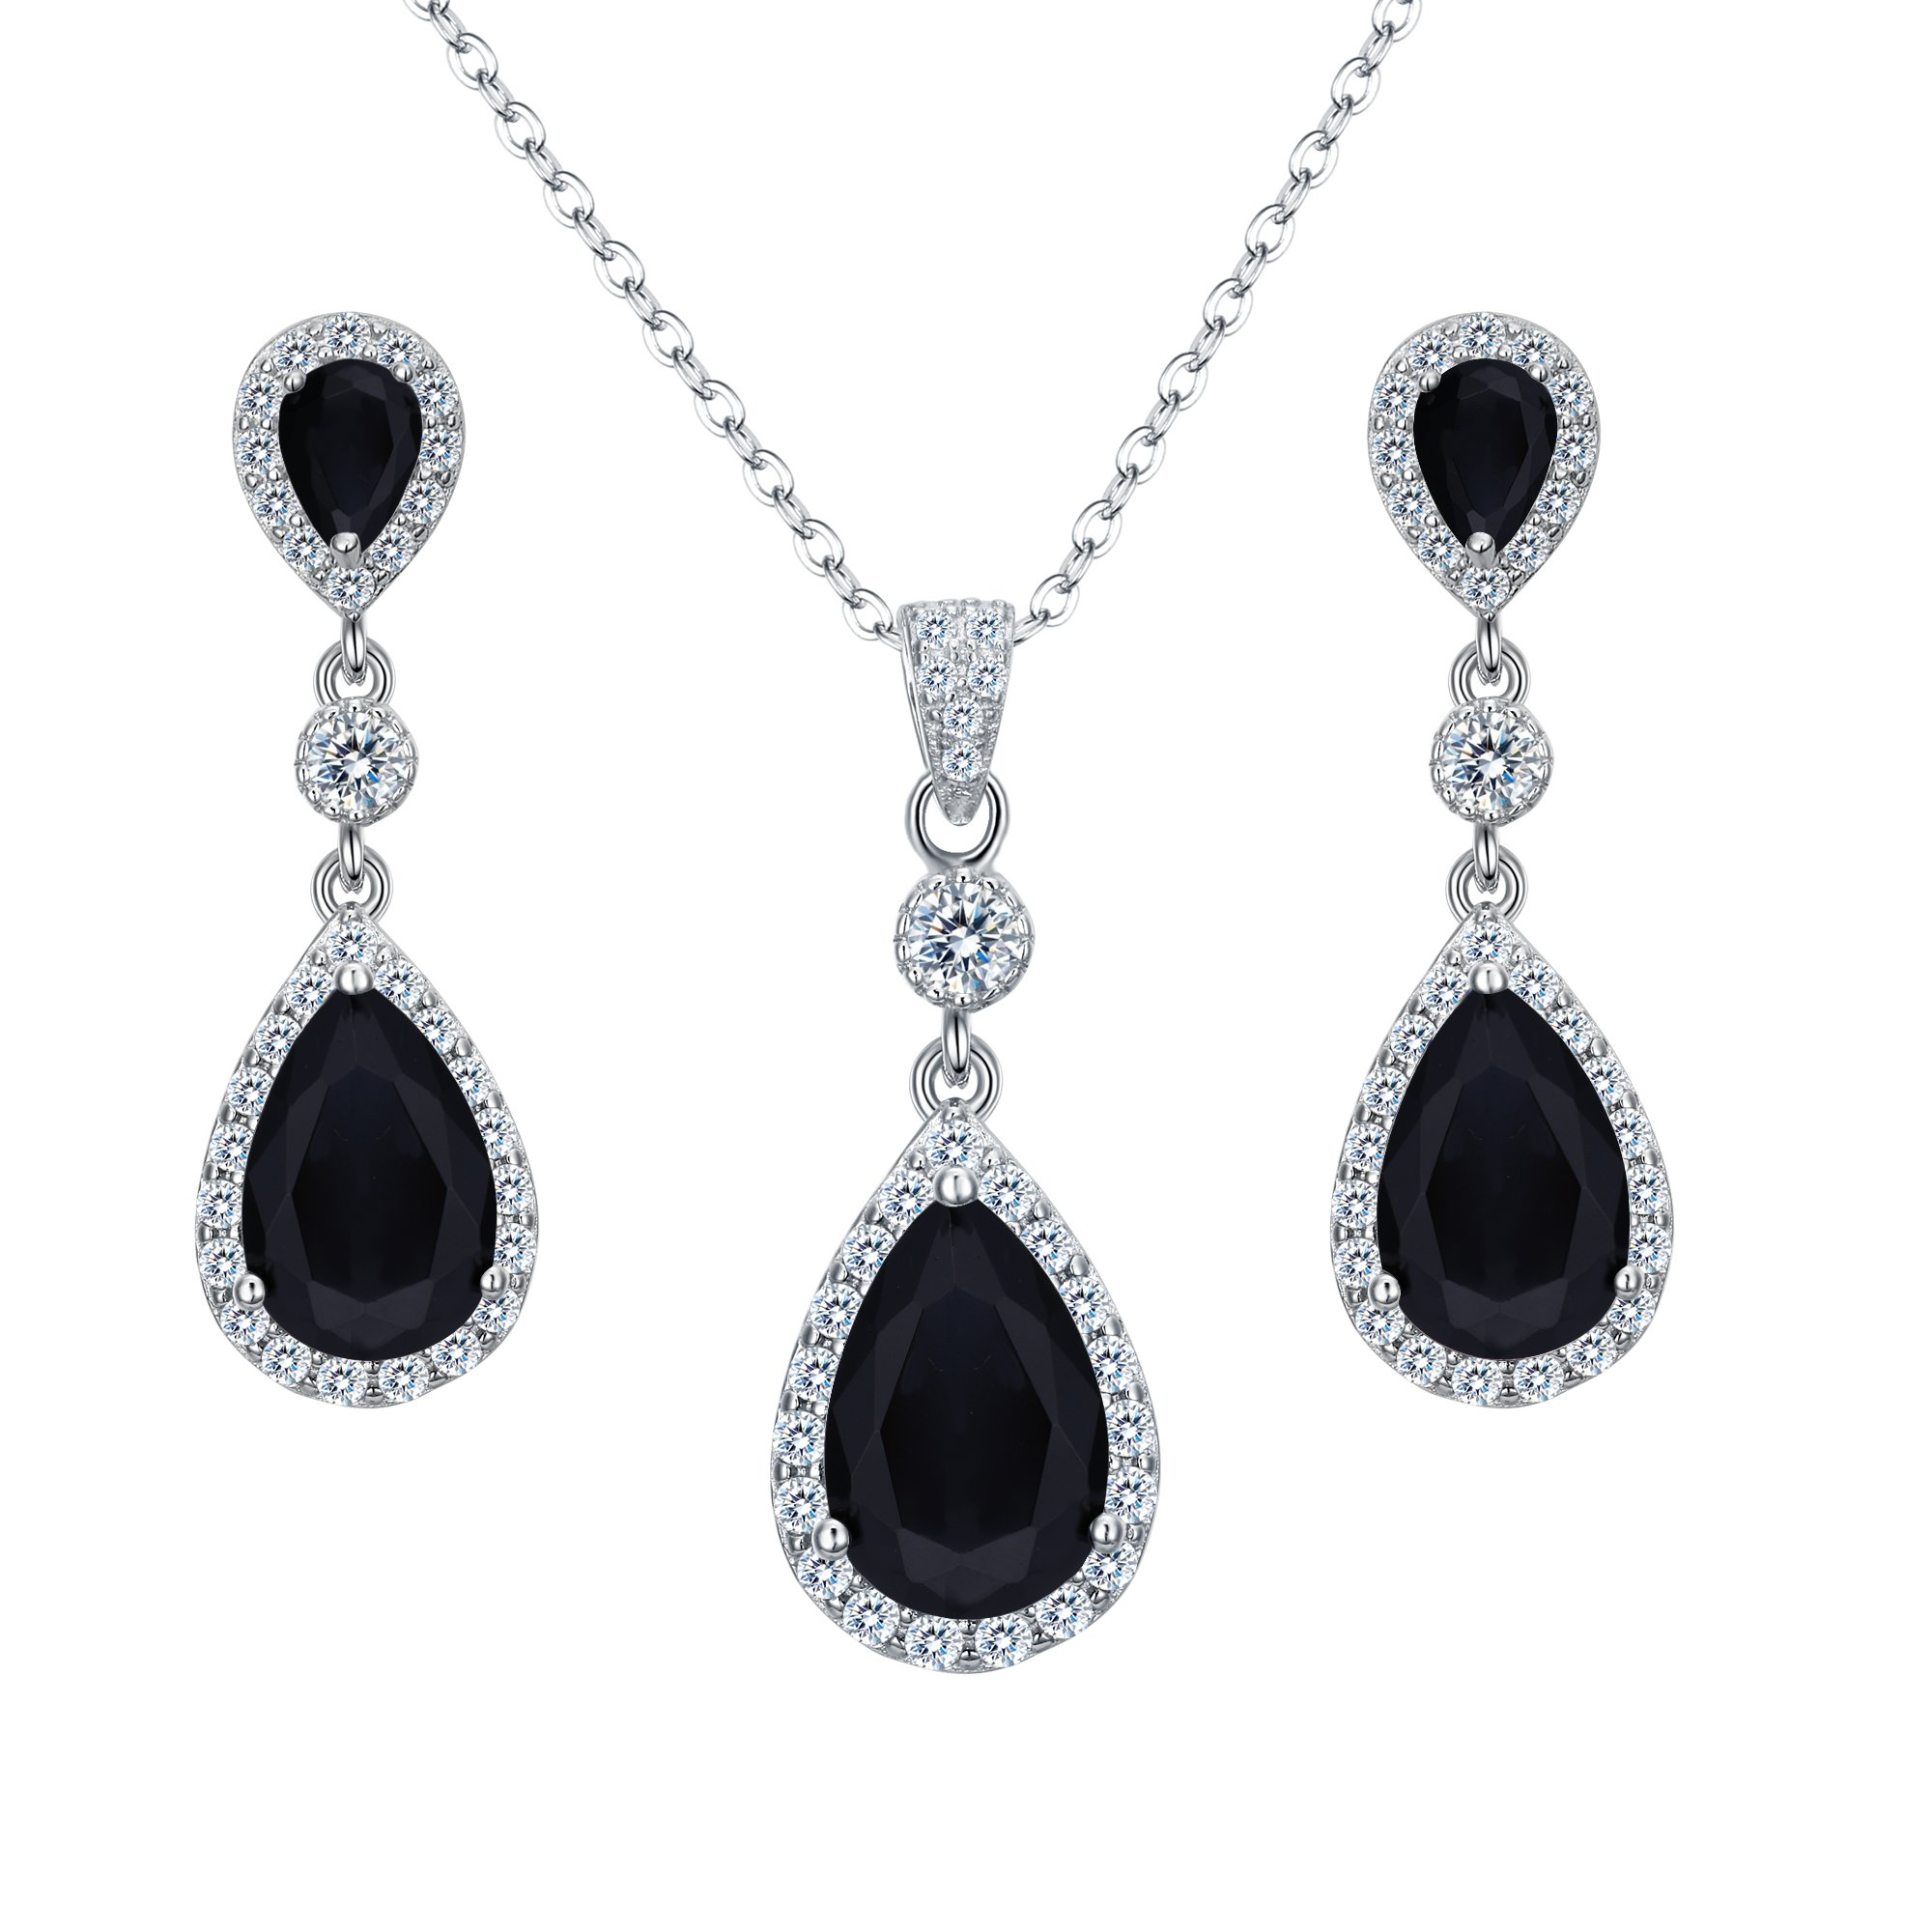 Clearine Womens 925 Sterling Silver Wedding Bridal CZ Baroque Inspired Pendant Necklace Hook Dangle Earrings Set